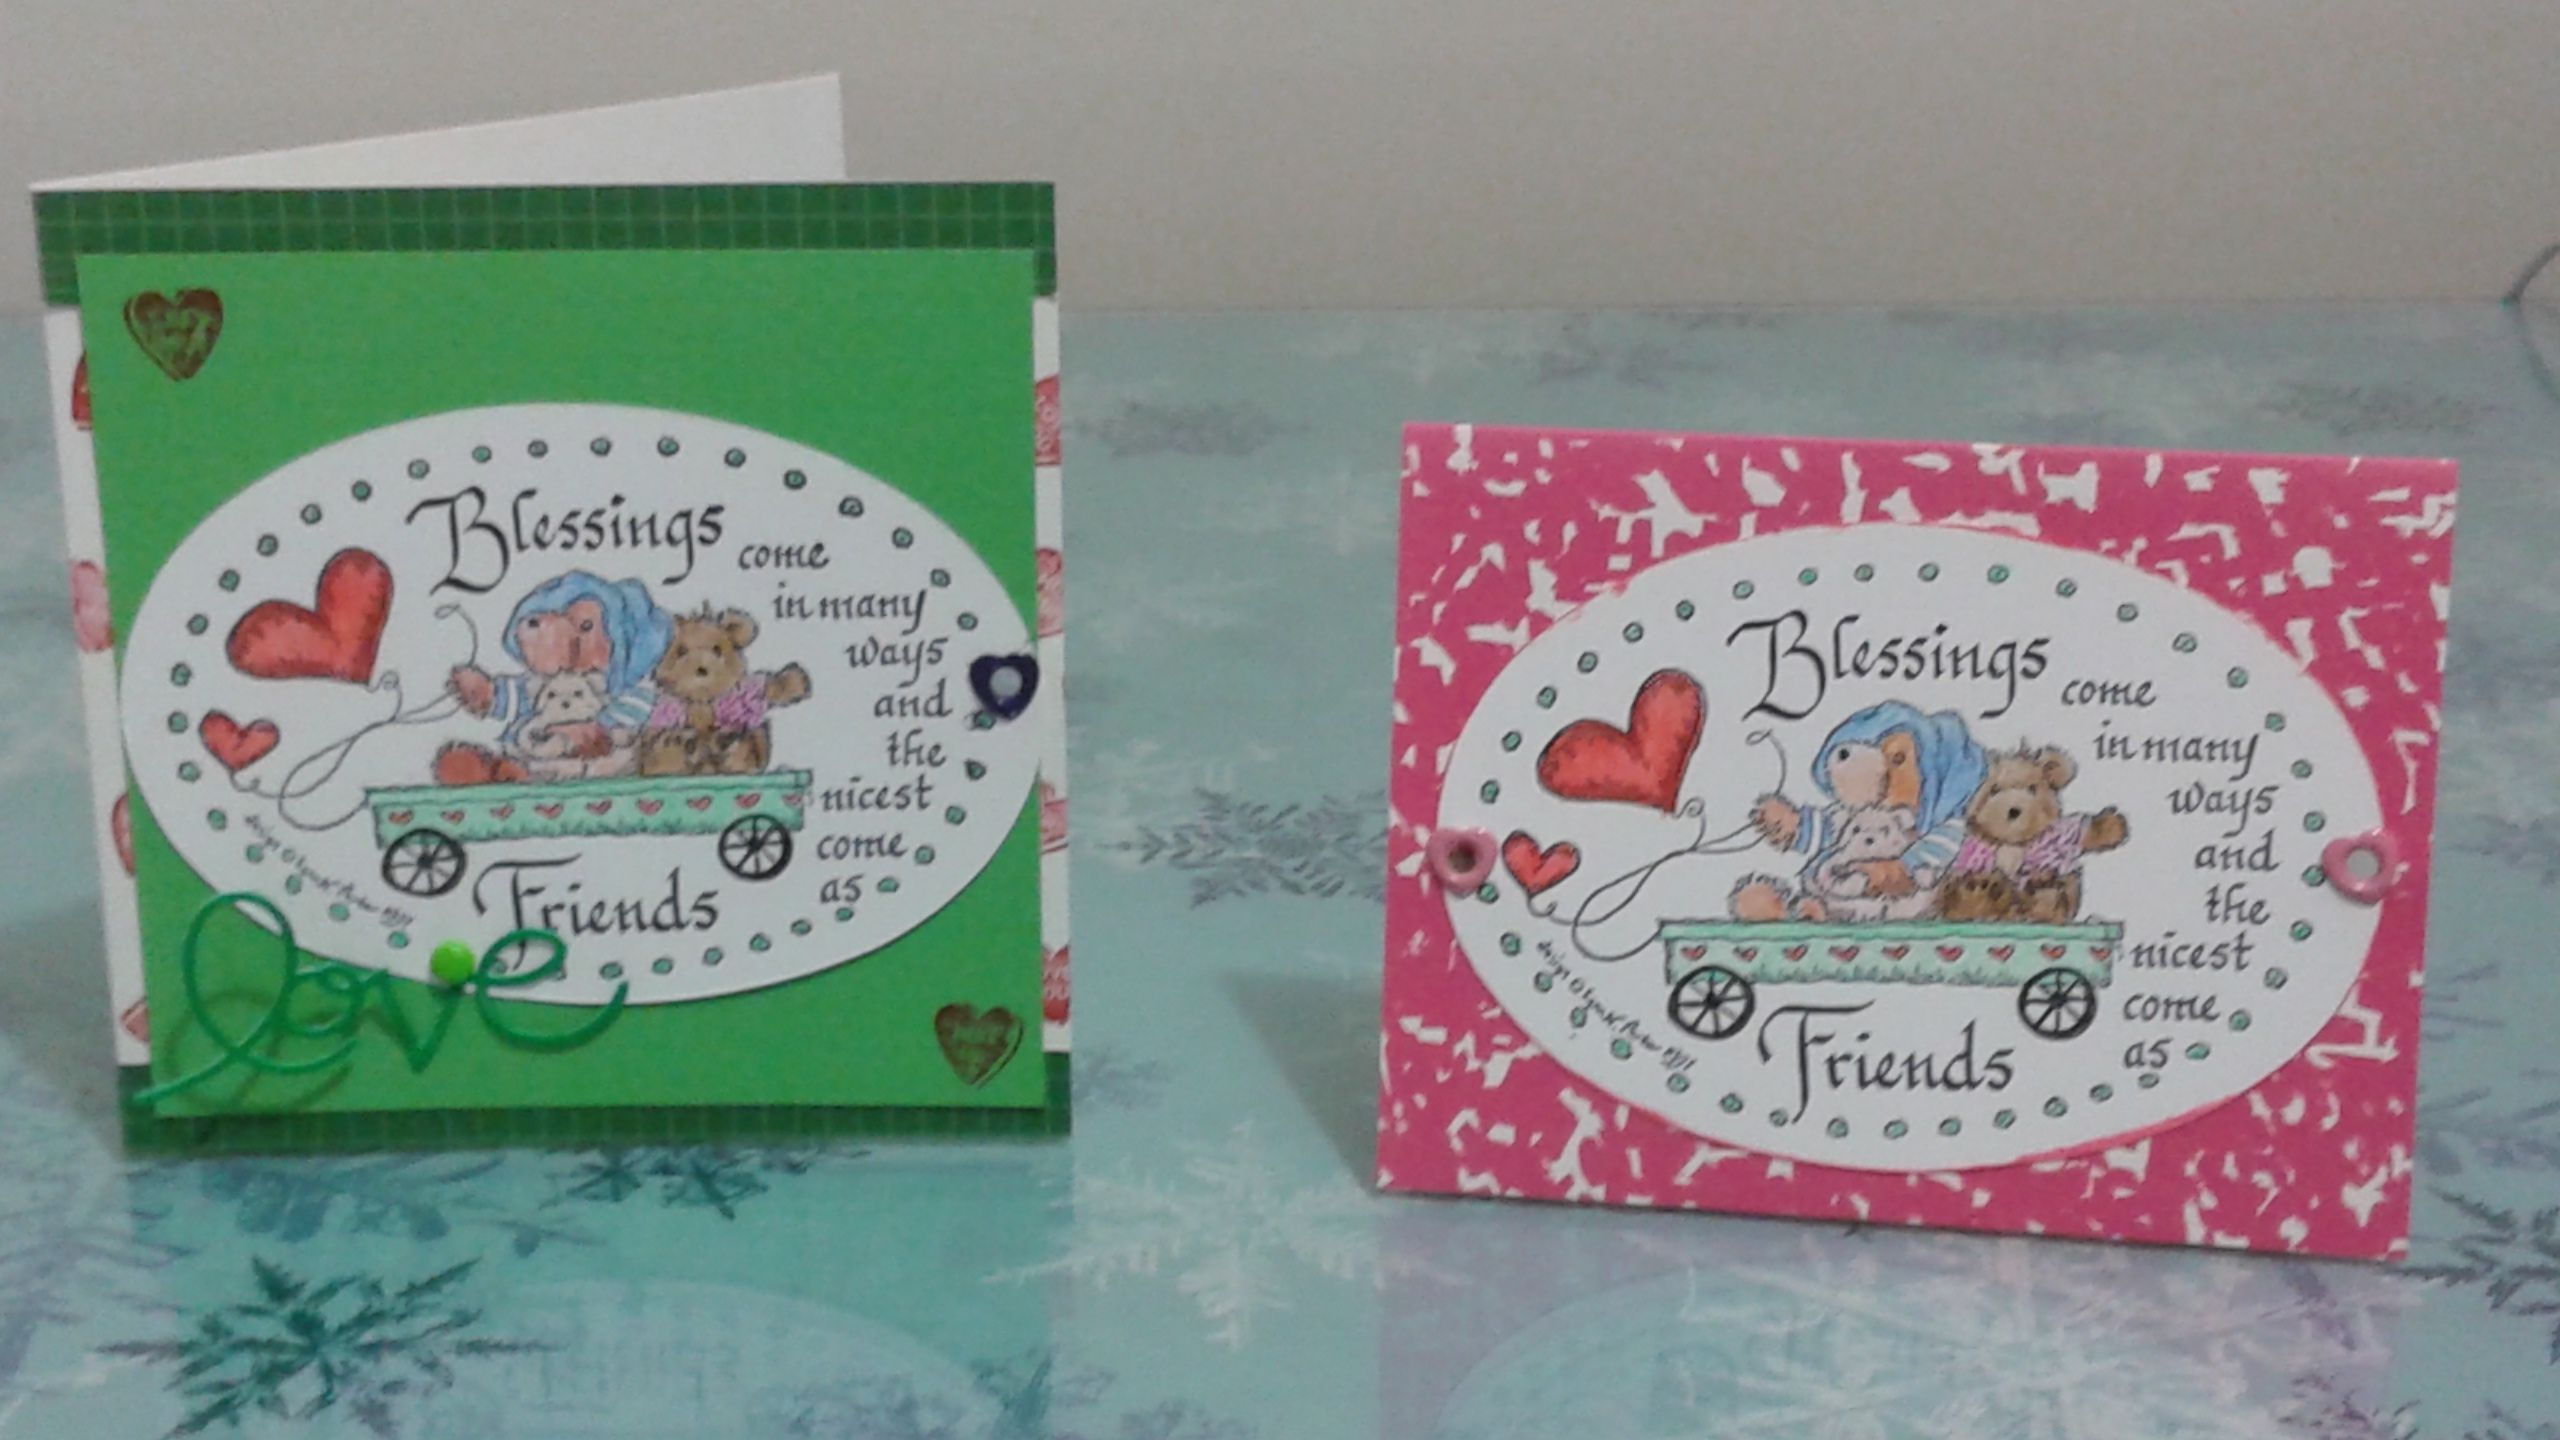 My Littlest Grandson 6 Months Old Needed Cards For His Two